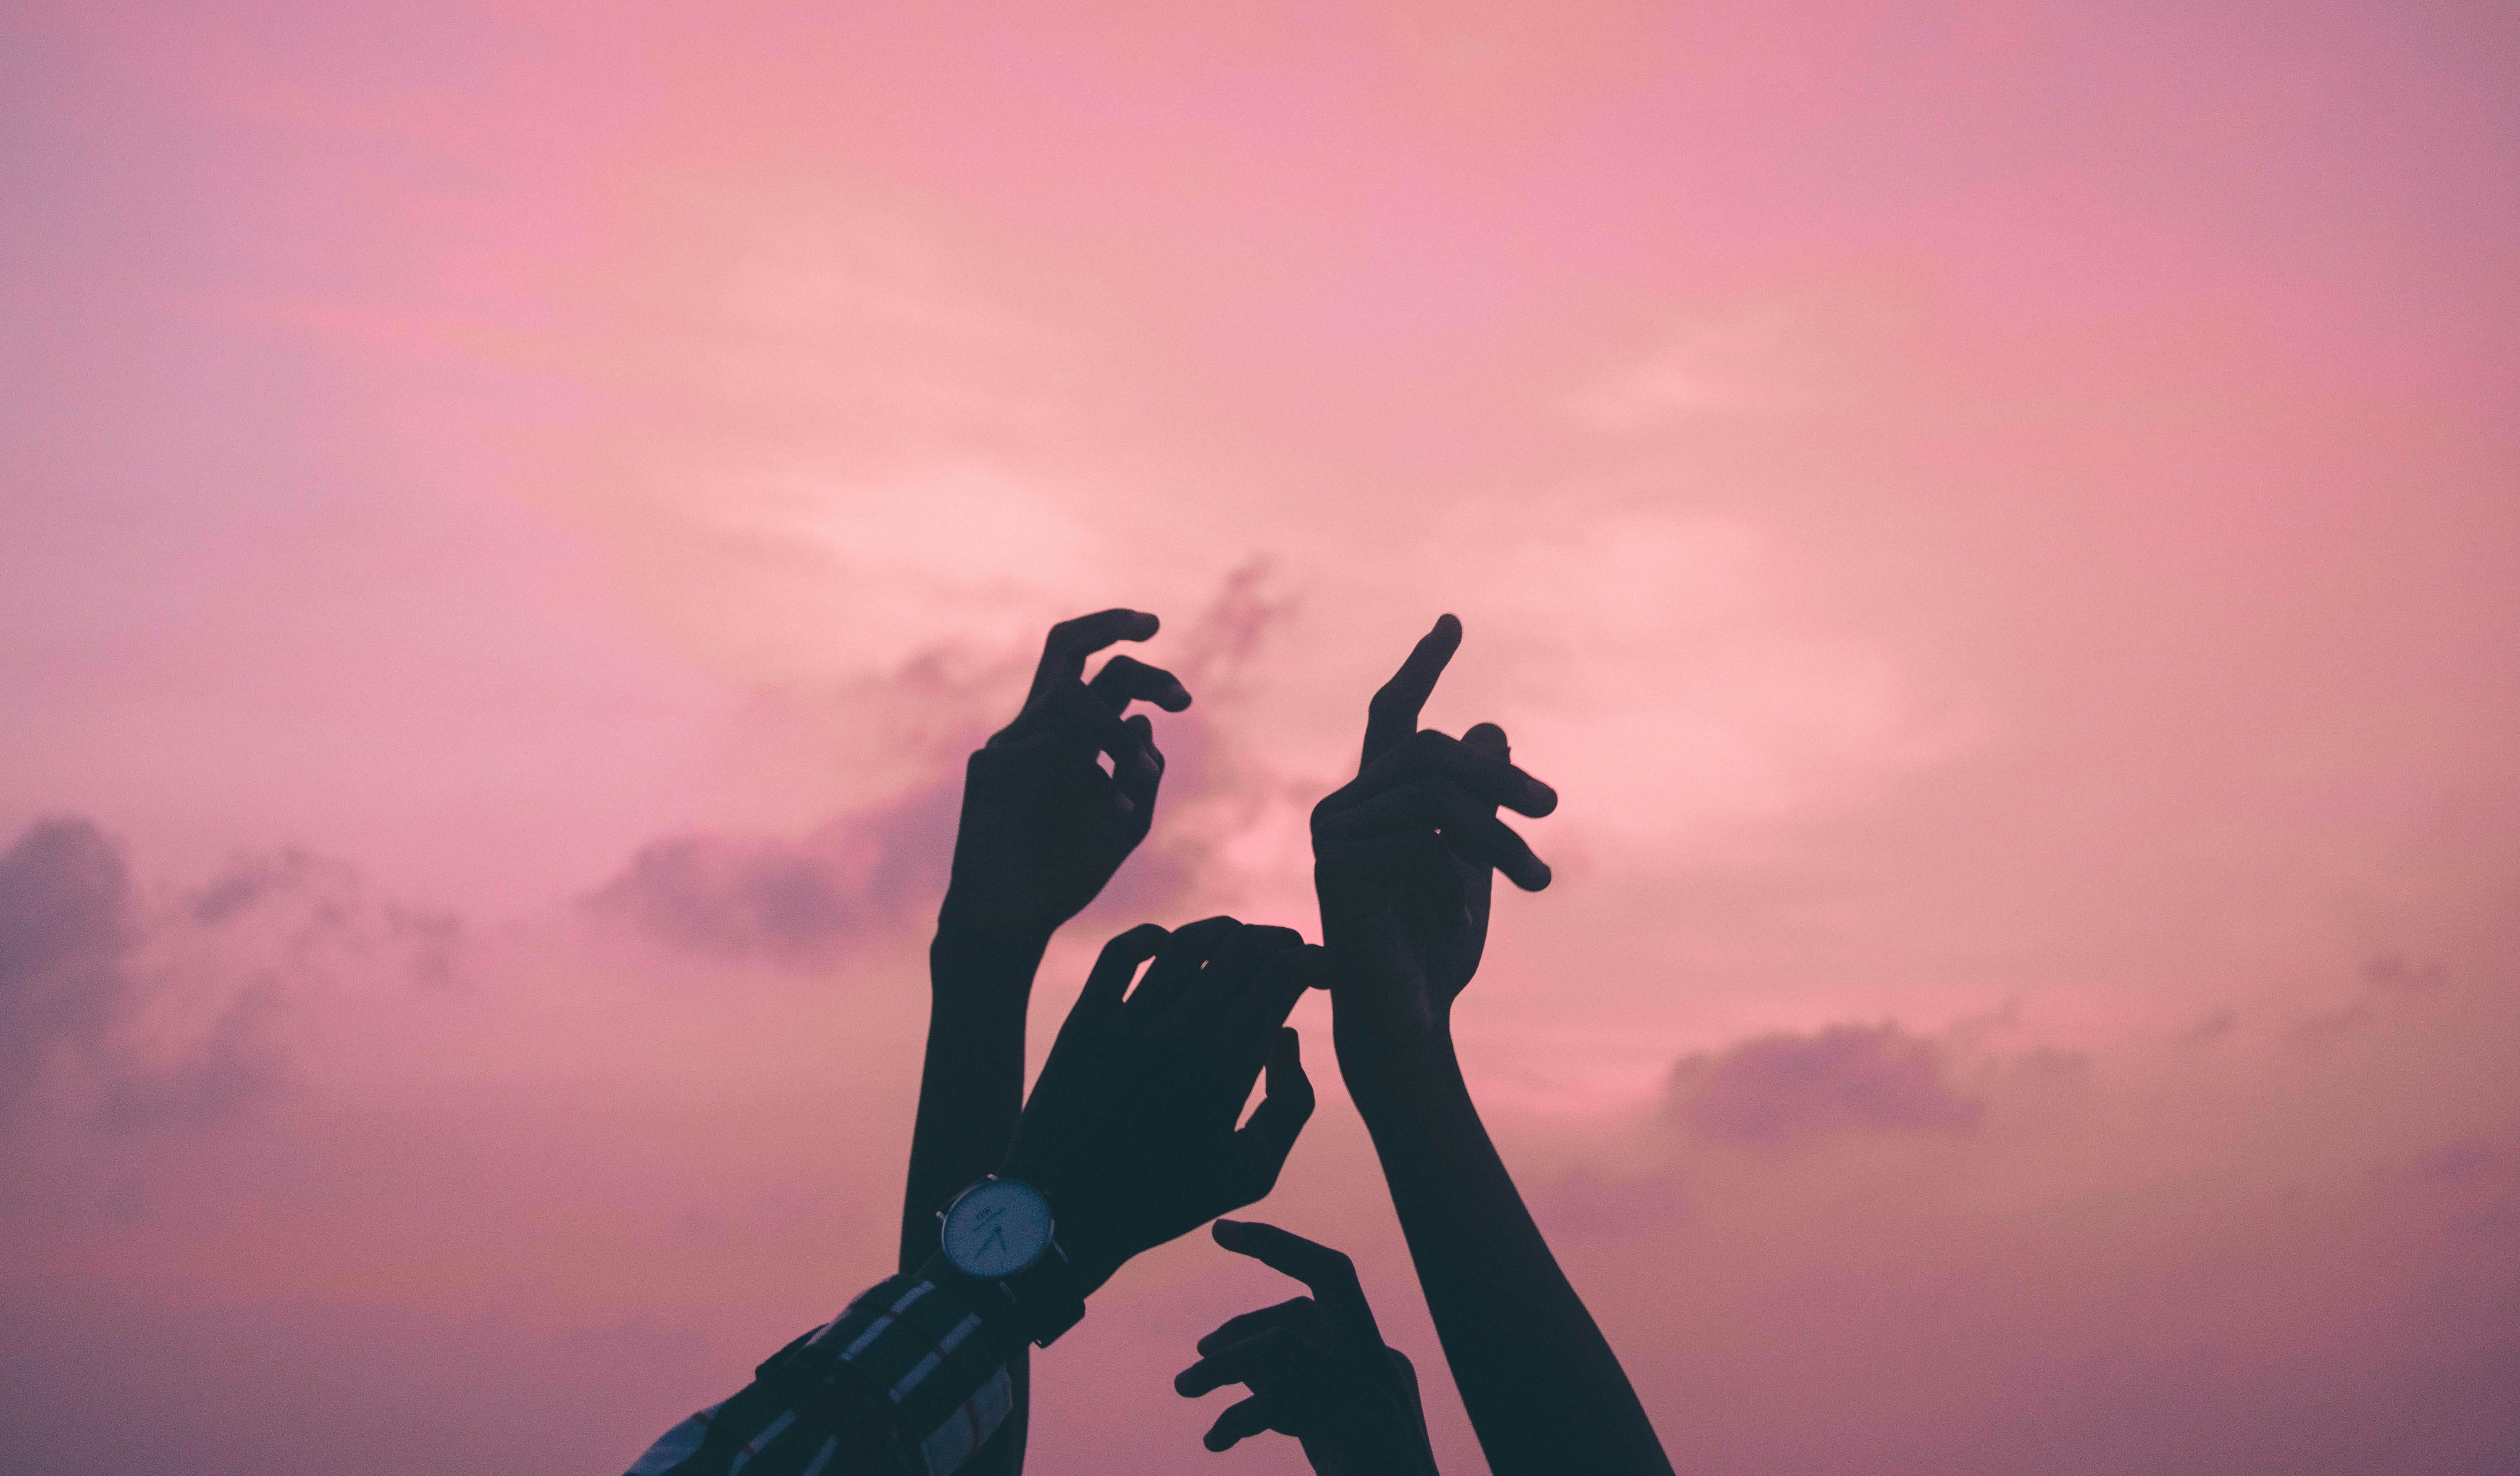 persons hand up photo